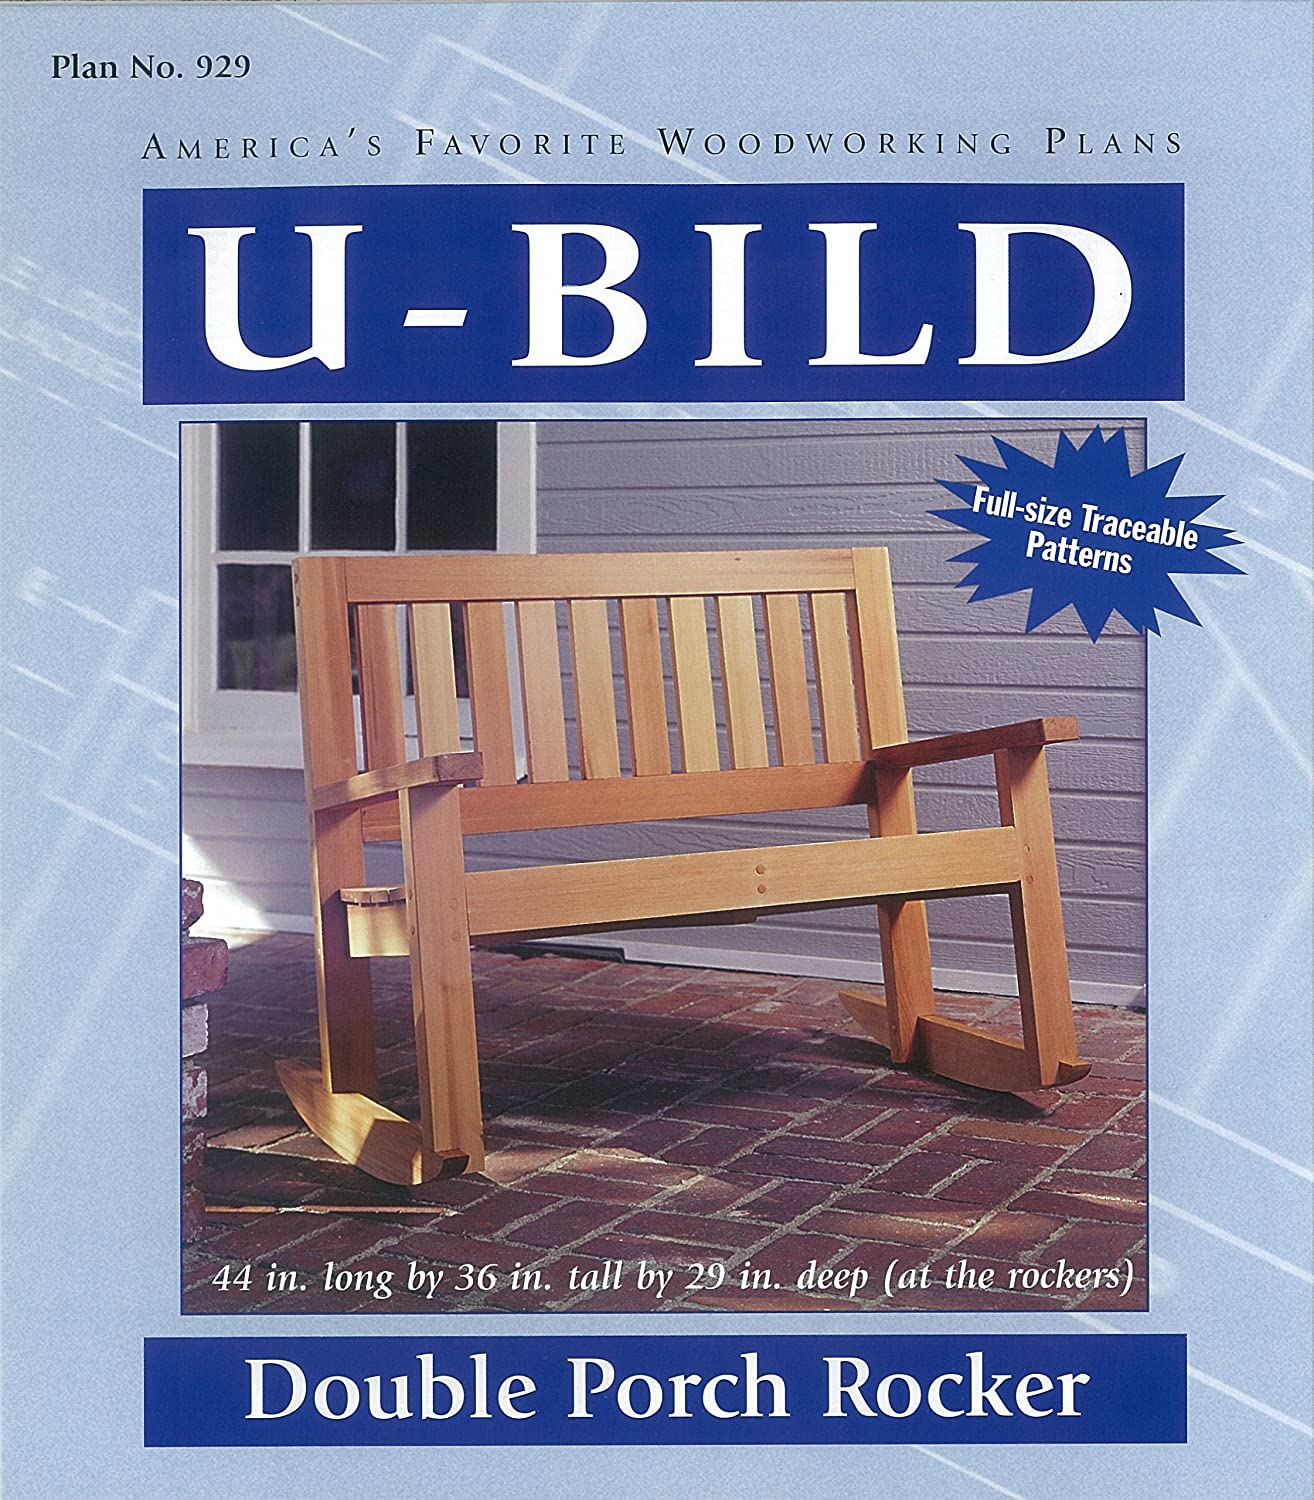 Pleasing U Bild 929 Double Porch Rocker Project Plan Caraccident5 Cool Chair Designs And Ideas Caraccident5Info